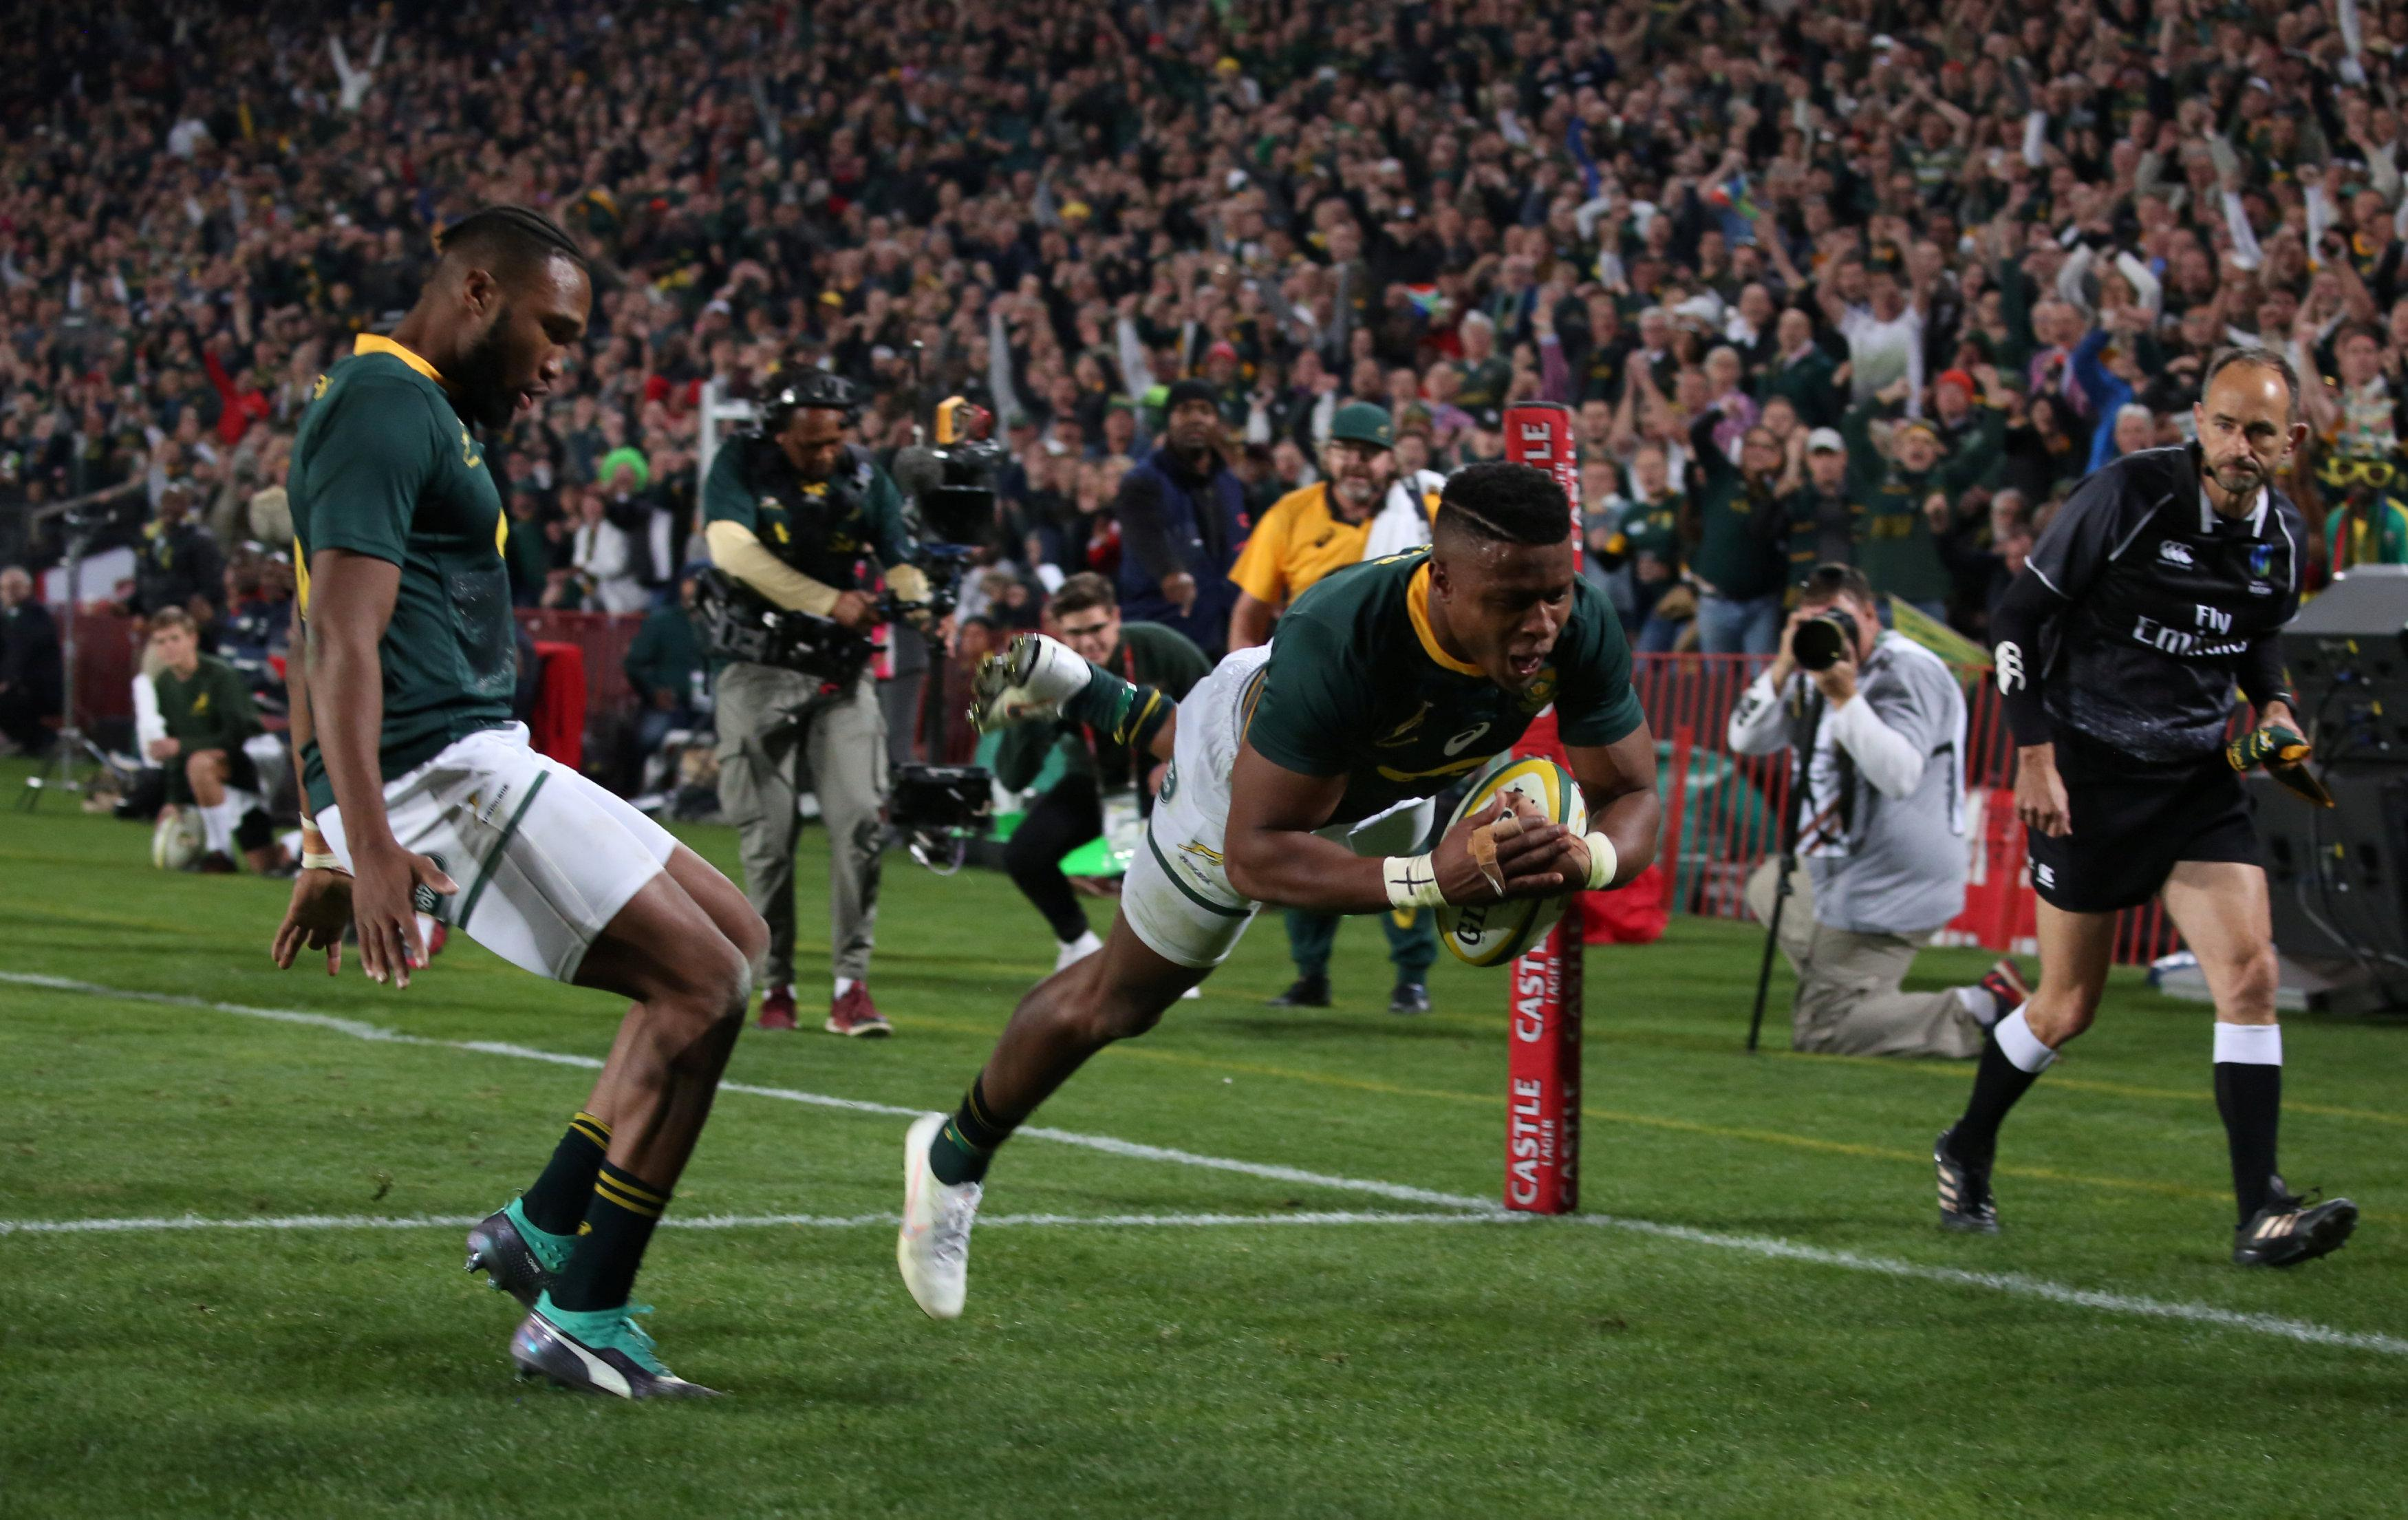 South Africa roared back after a dodgy start to pip England